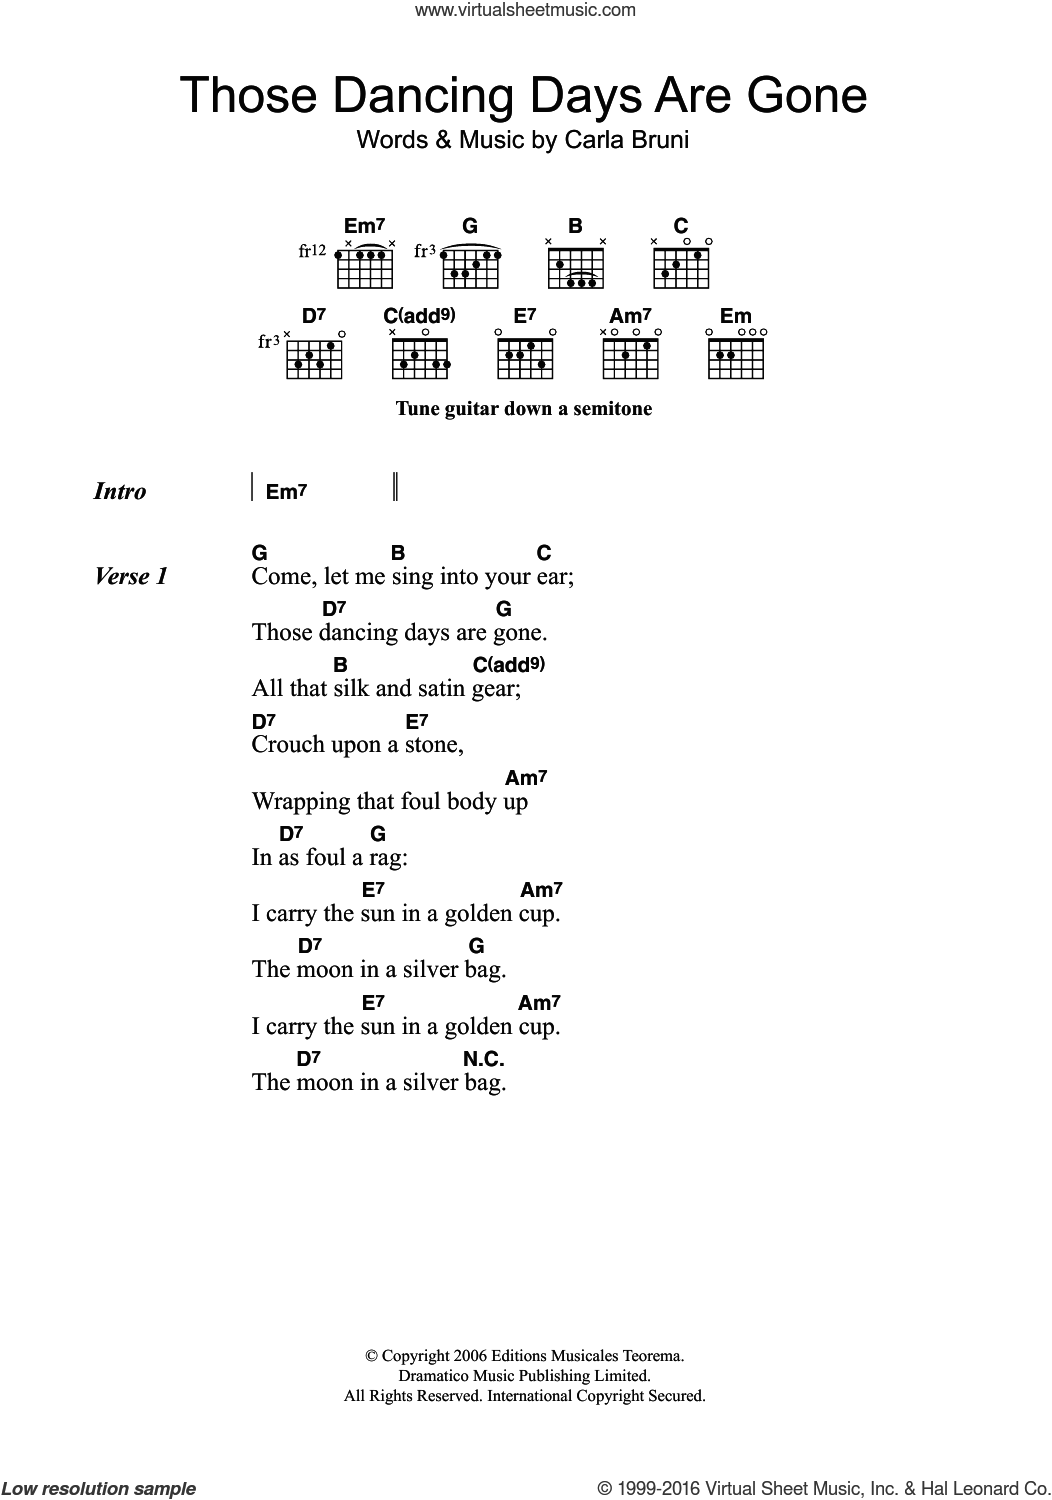 Those Dancing Days Are Gone sheet music for guitar (chords) by Carla Bruni, intermediate skill level